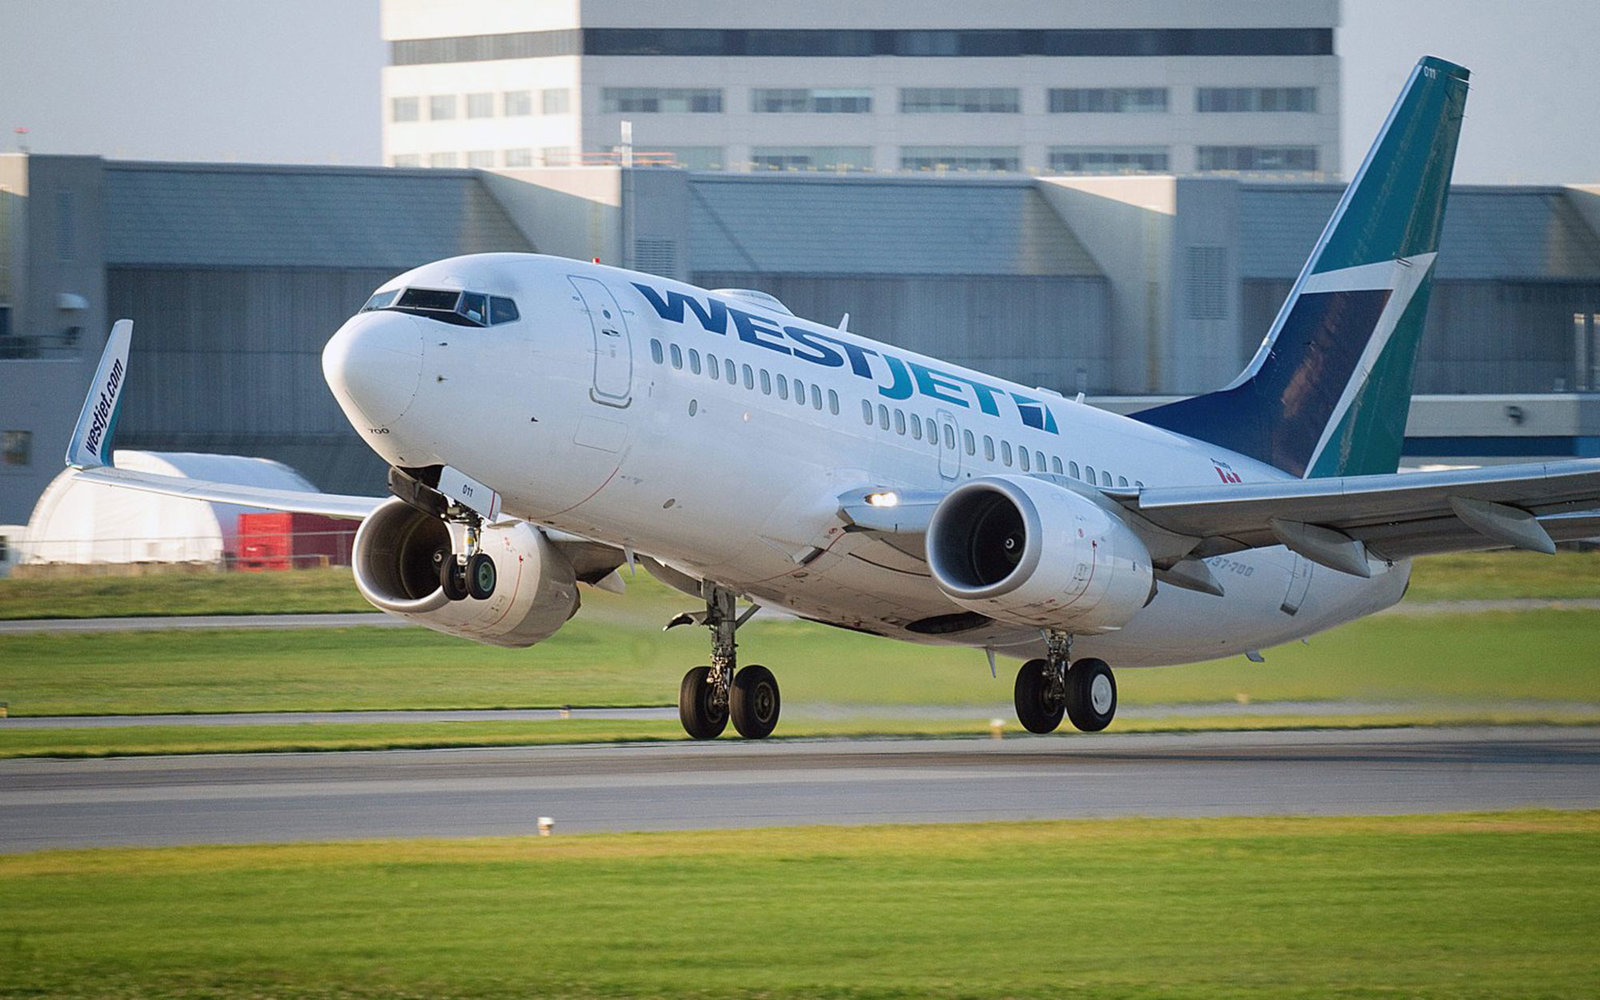 Westjet aircraft taking-off from Trudeau International airport in Montreal.The Canadian Press Images-Mario Beauregard